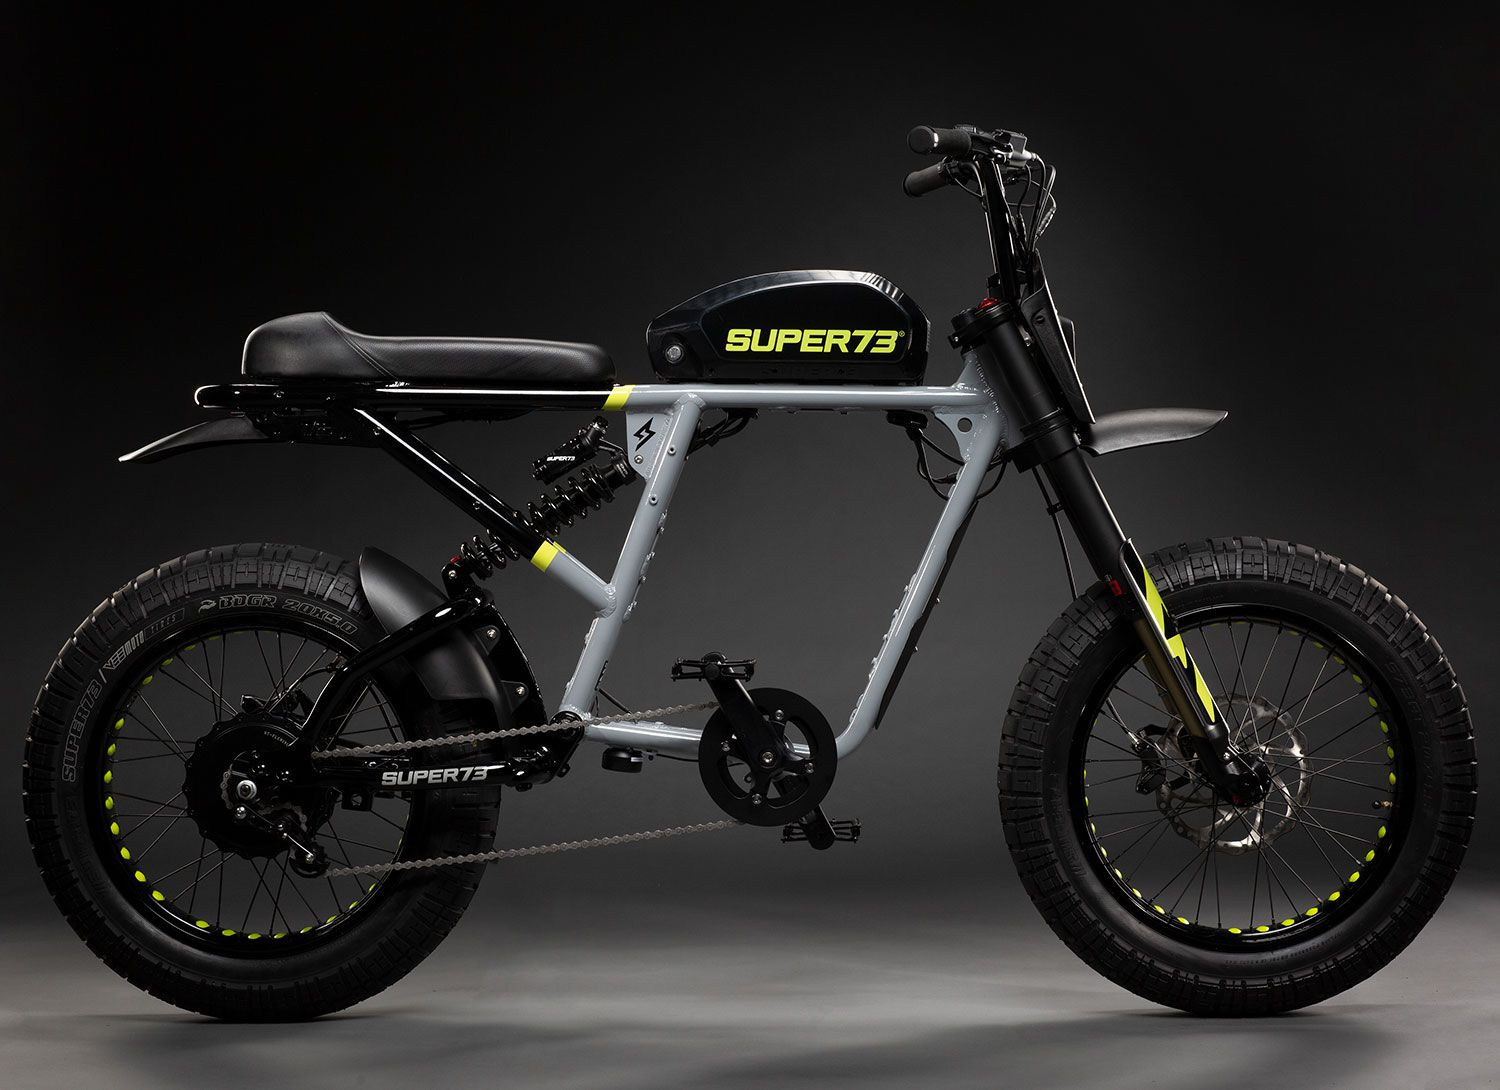 The R-Series Super73 draws inspiration from 1970s-era Taco minibikes.